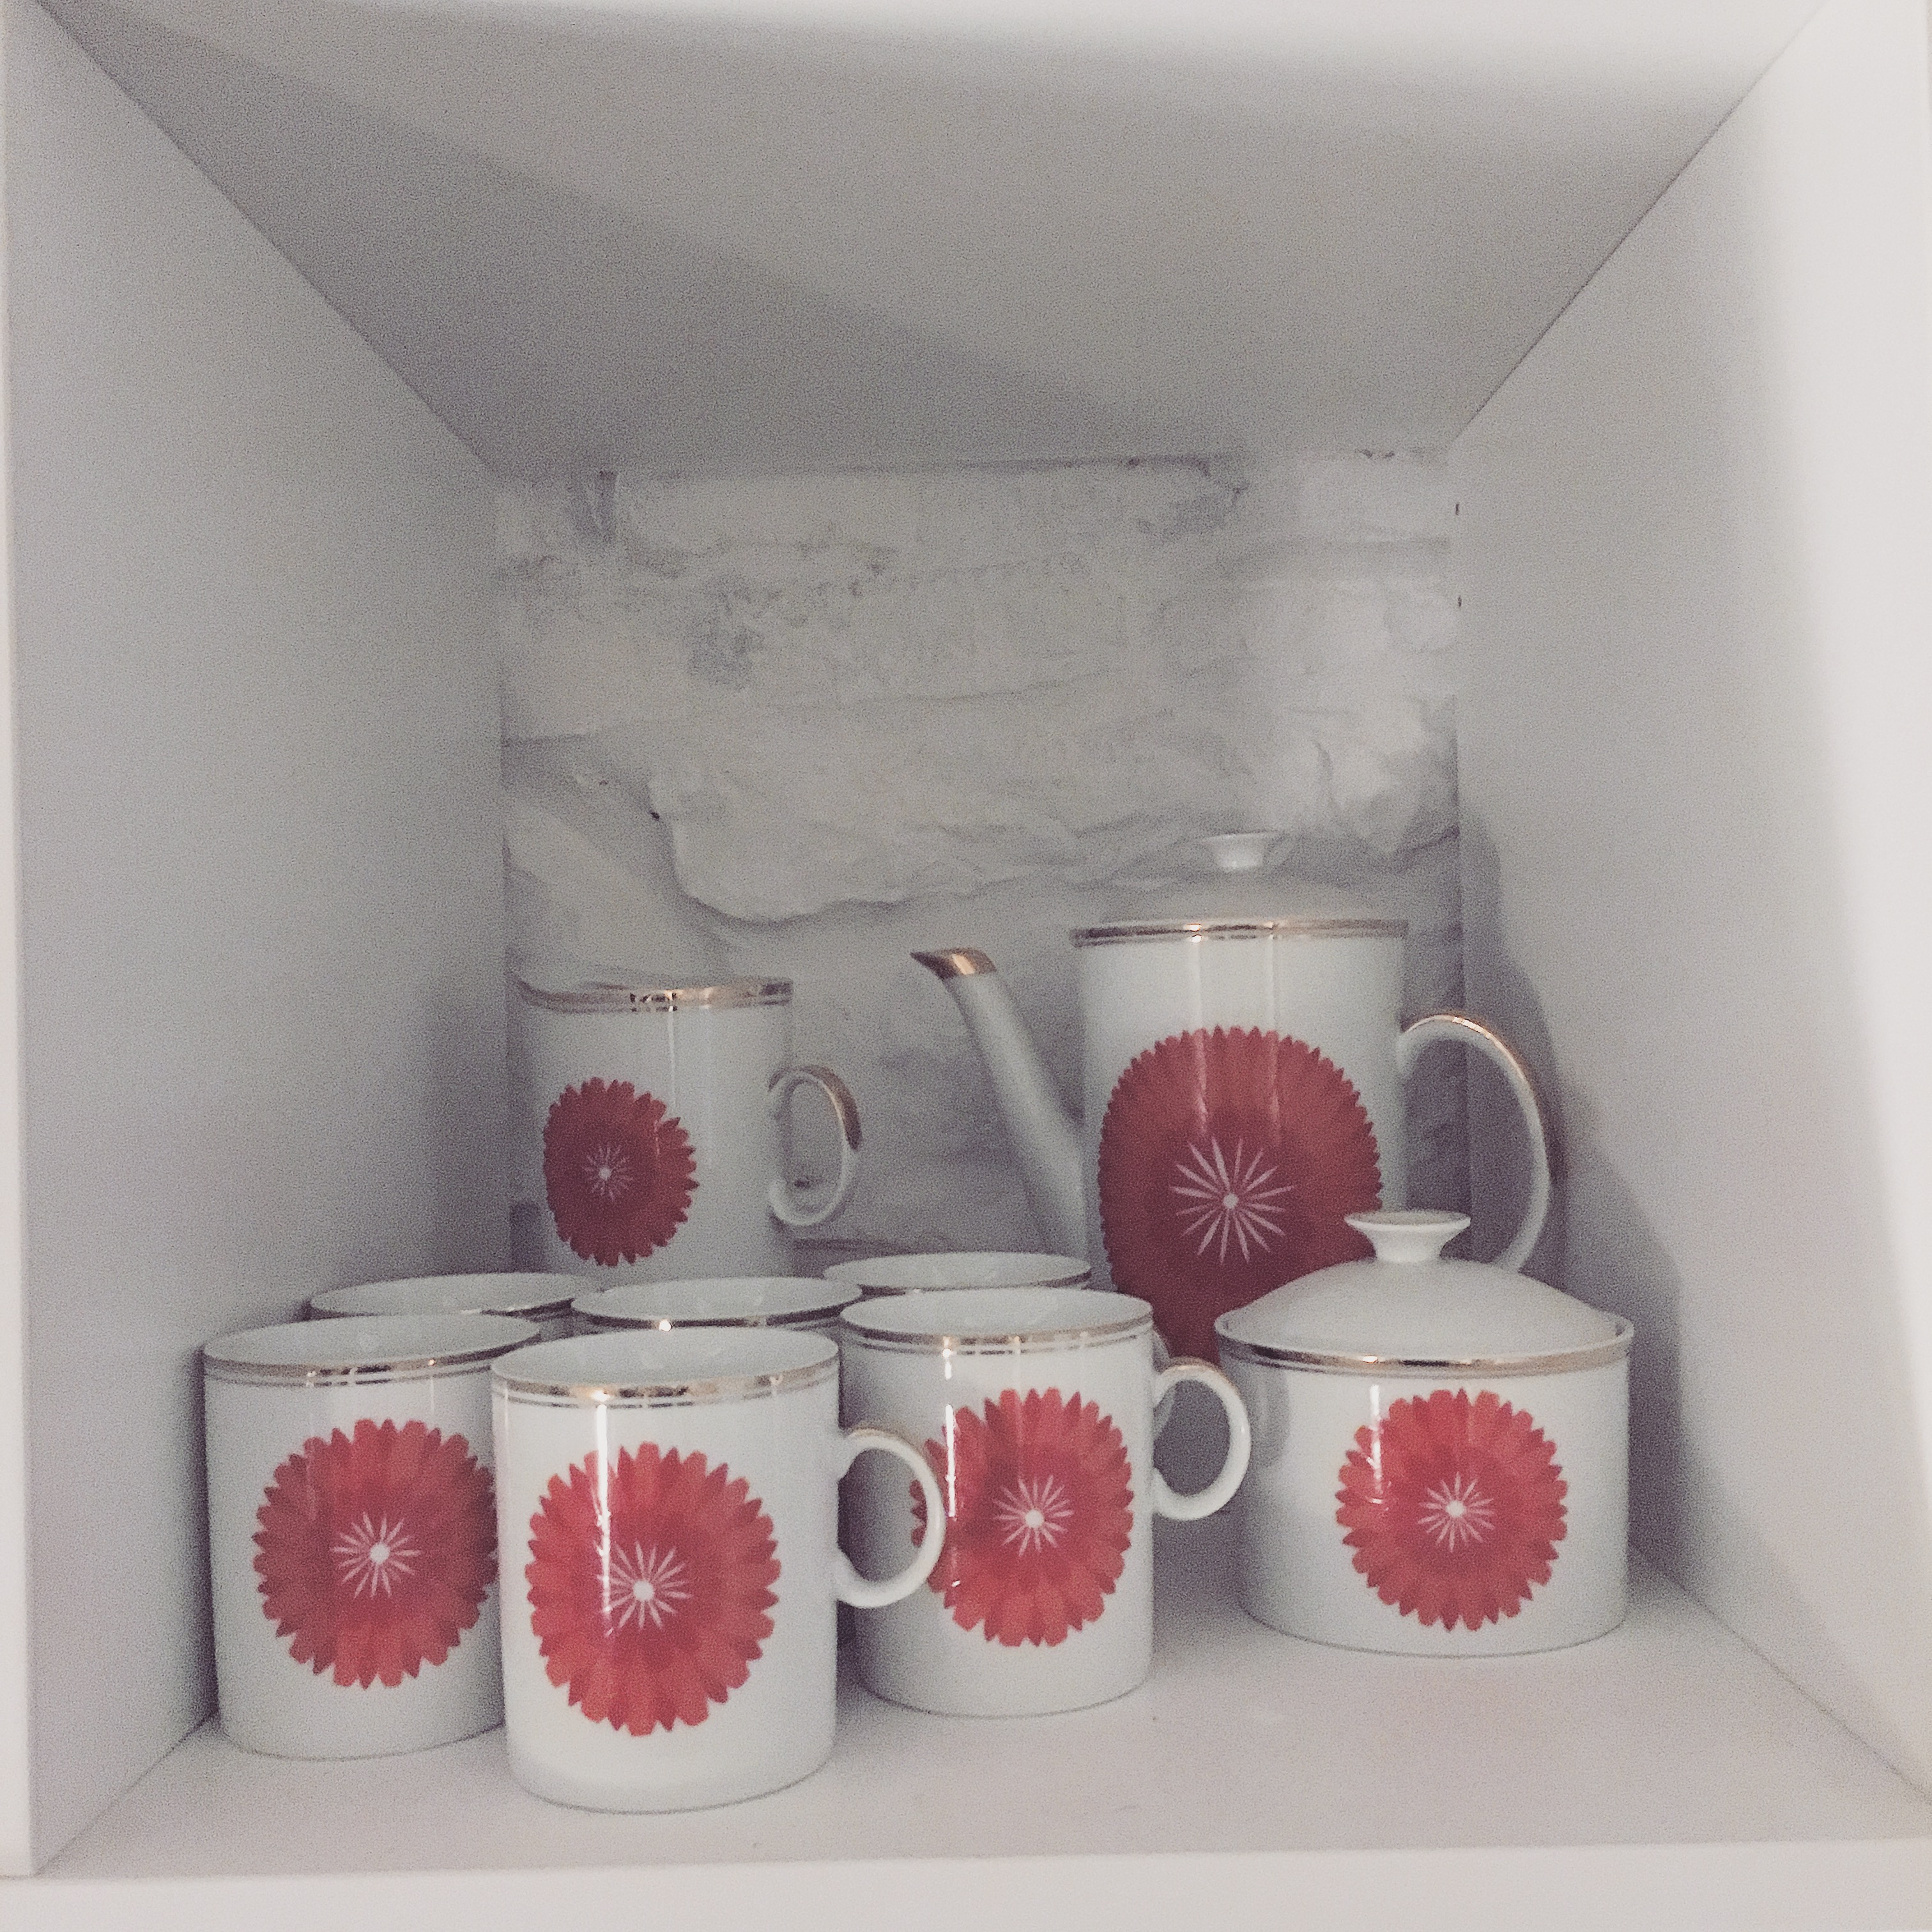 Our very, very special original 1960s (now retro) coffee set, which was origianlly a wedding present..